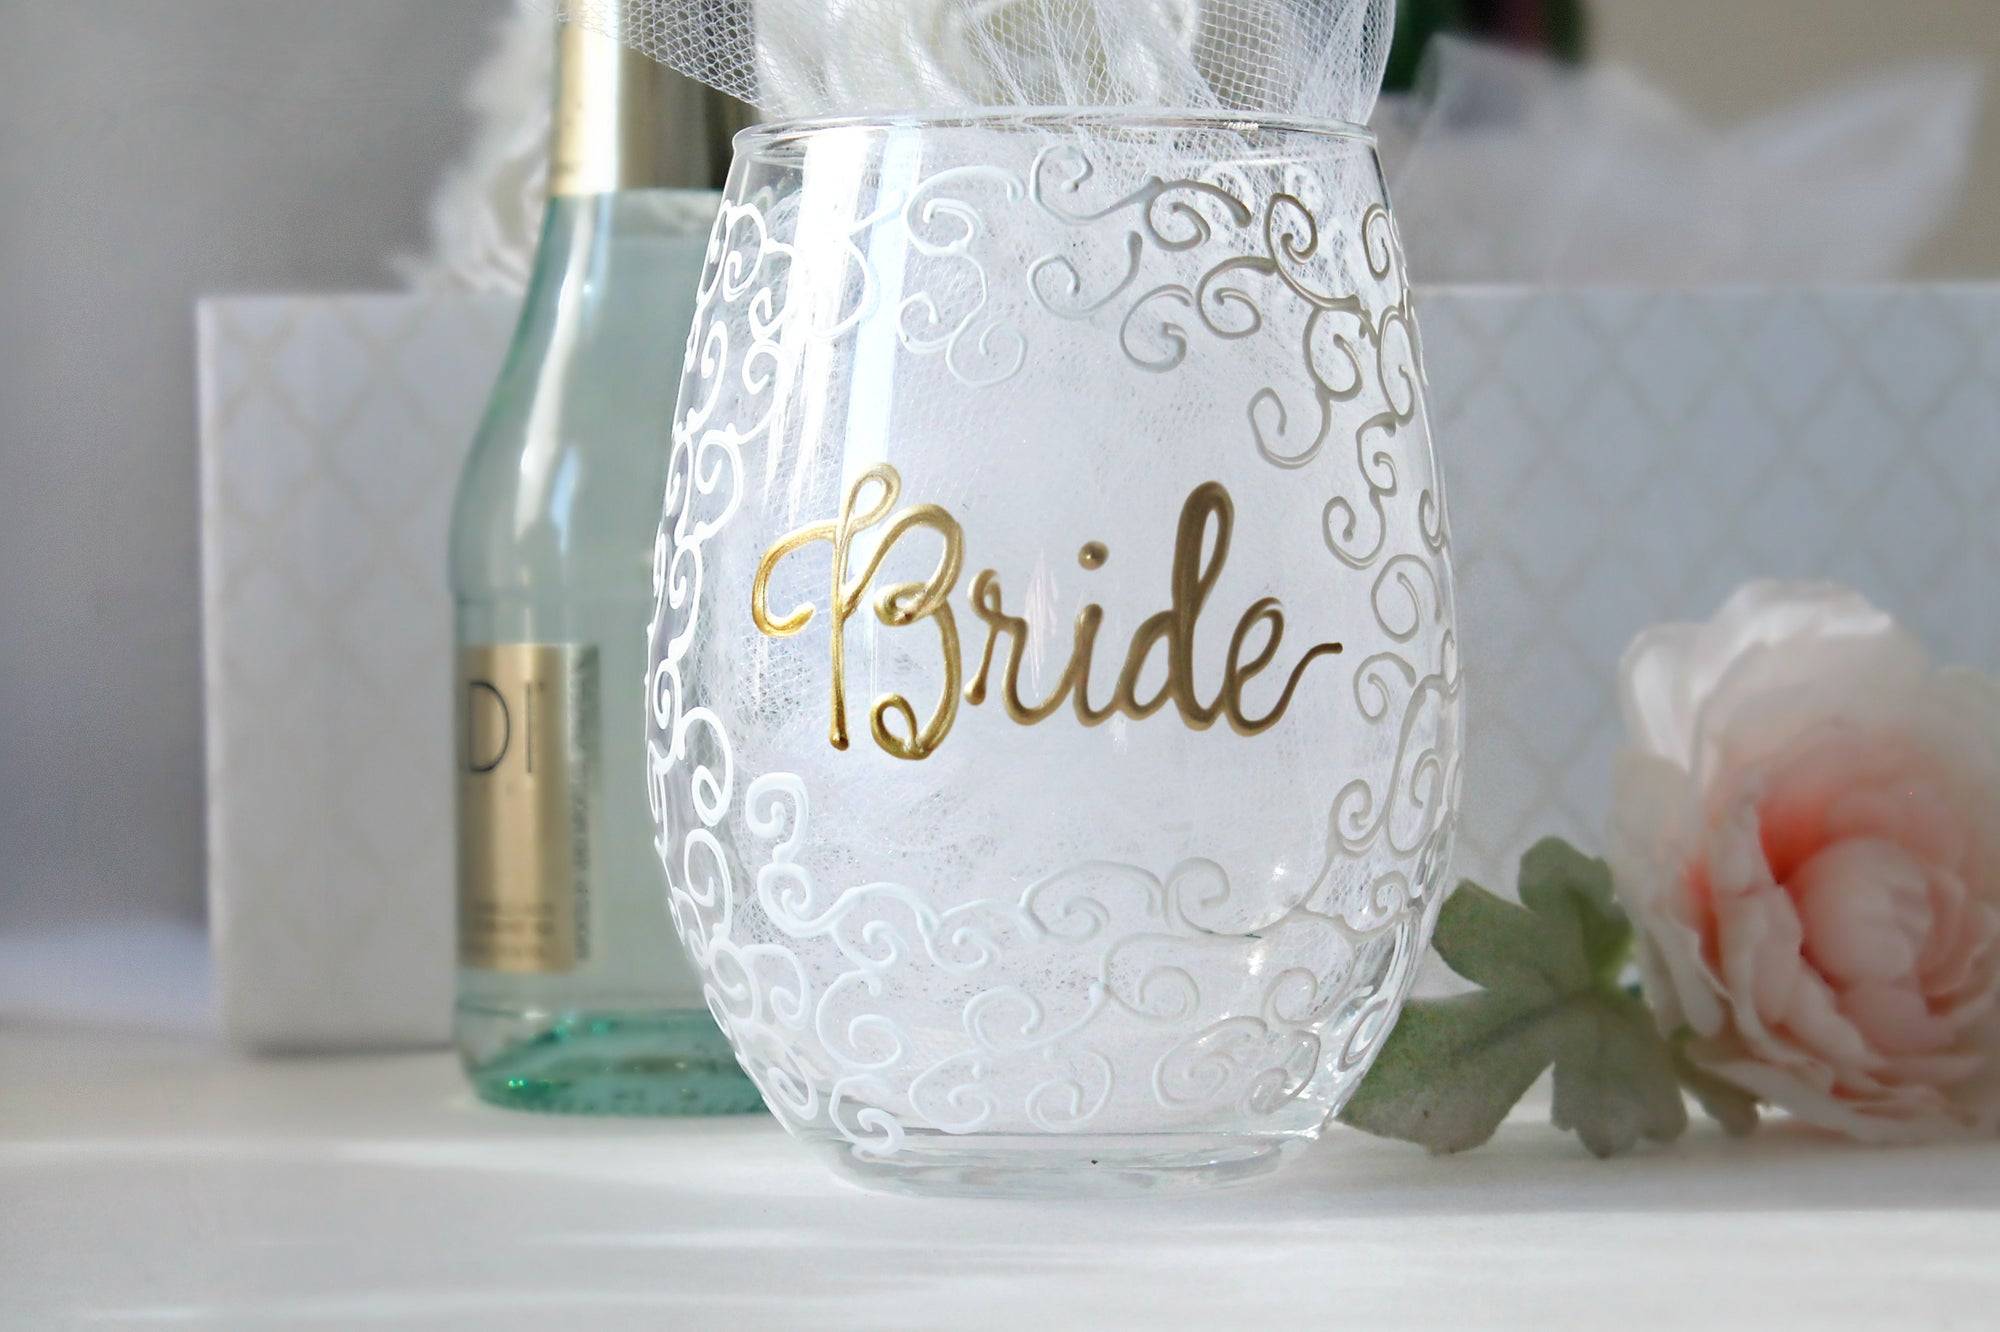 bride_with_lace_wine_glass_2000x.jpg?v=1518169381